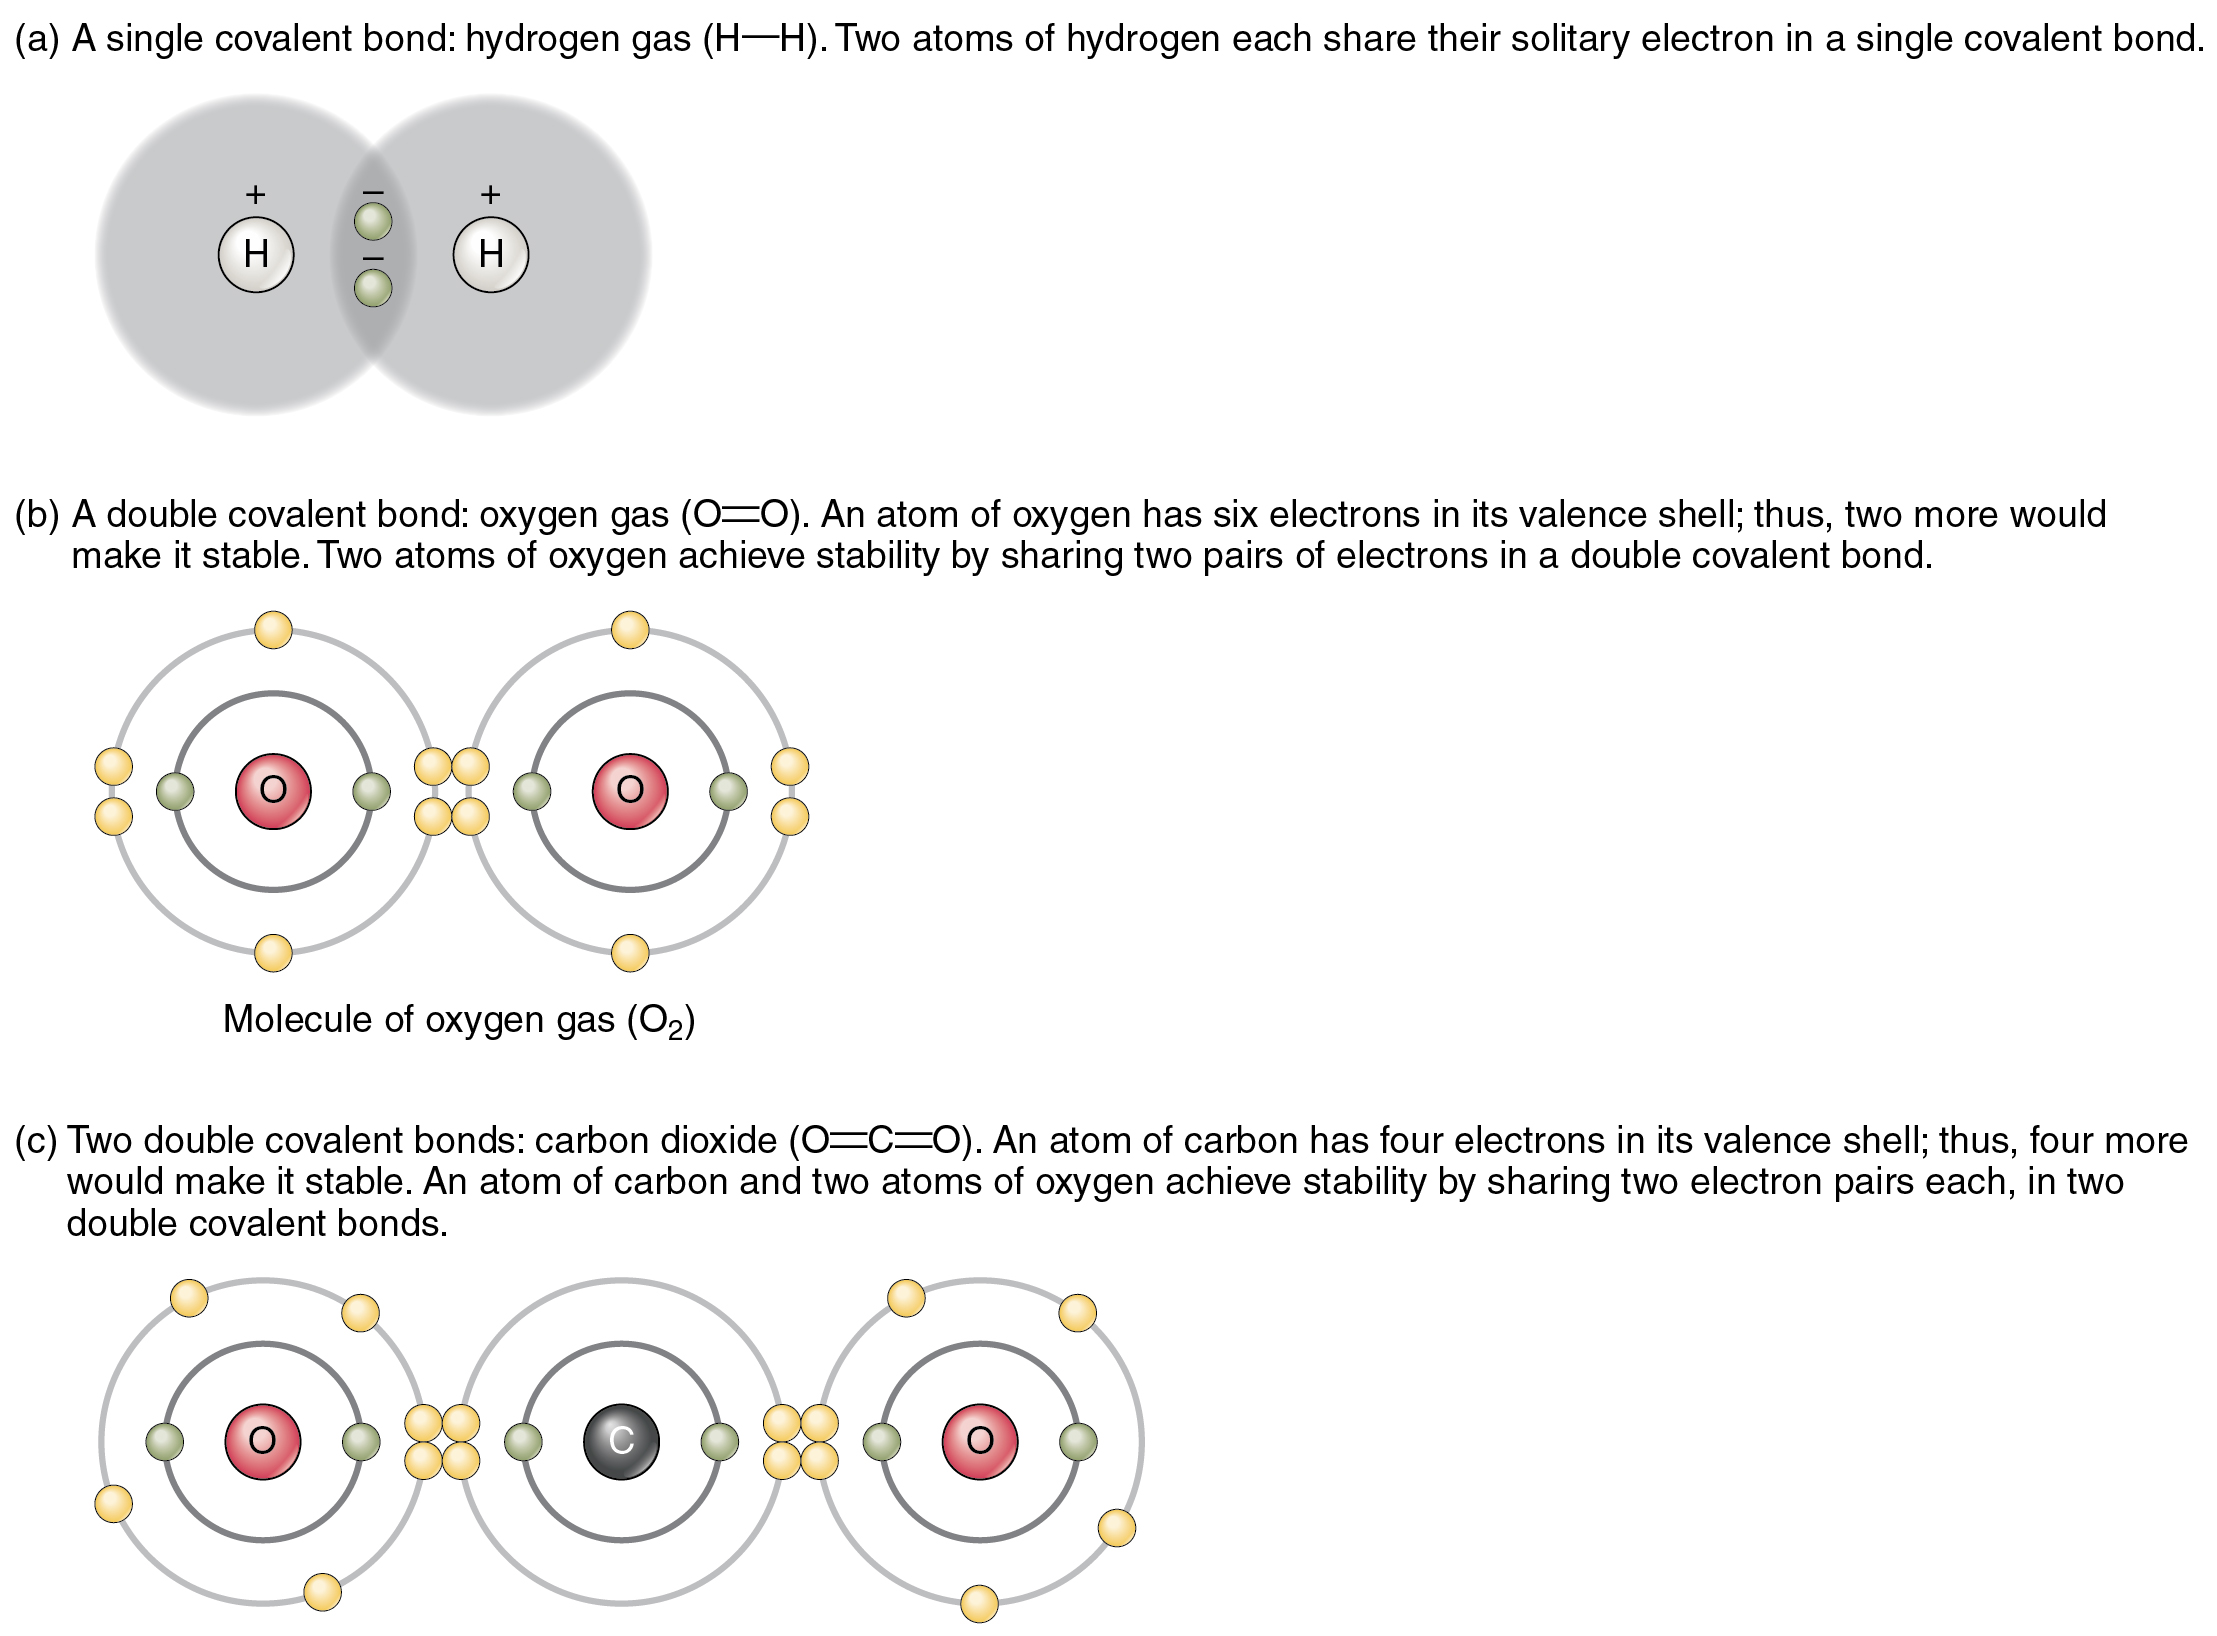 The top panel in this figure shows two hydrogen atoms sharing two electrons. The middle panel shows two oxygen atoms sharing four electrons, and the bottom panel shows two oxygen atoms and one carbon atom sharing 2 pairs of electrons each.